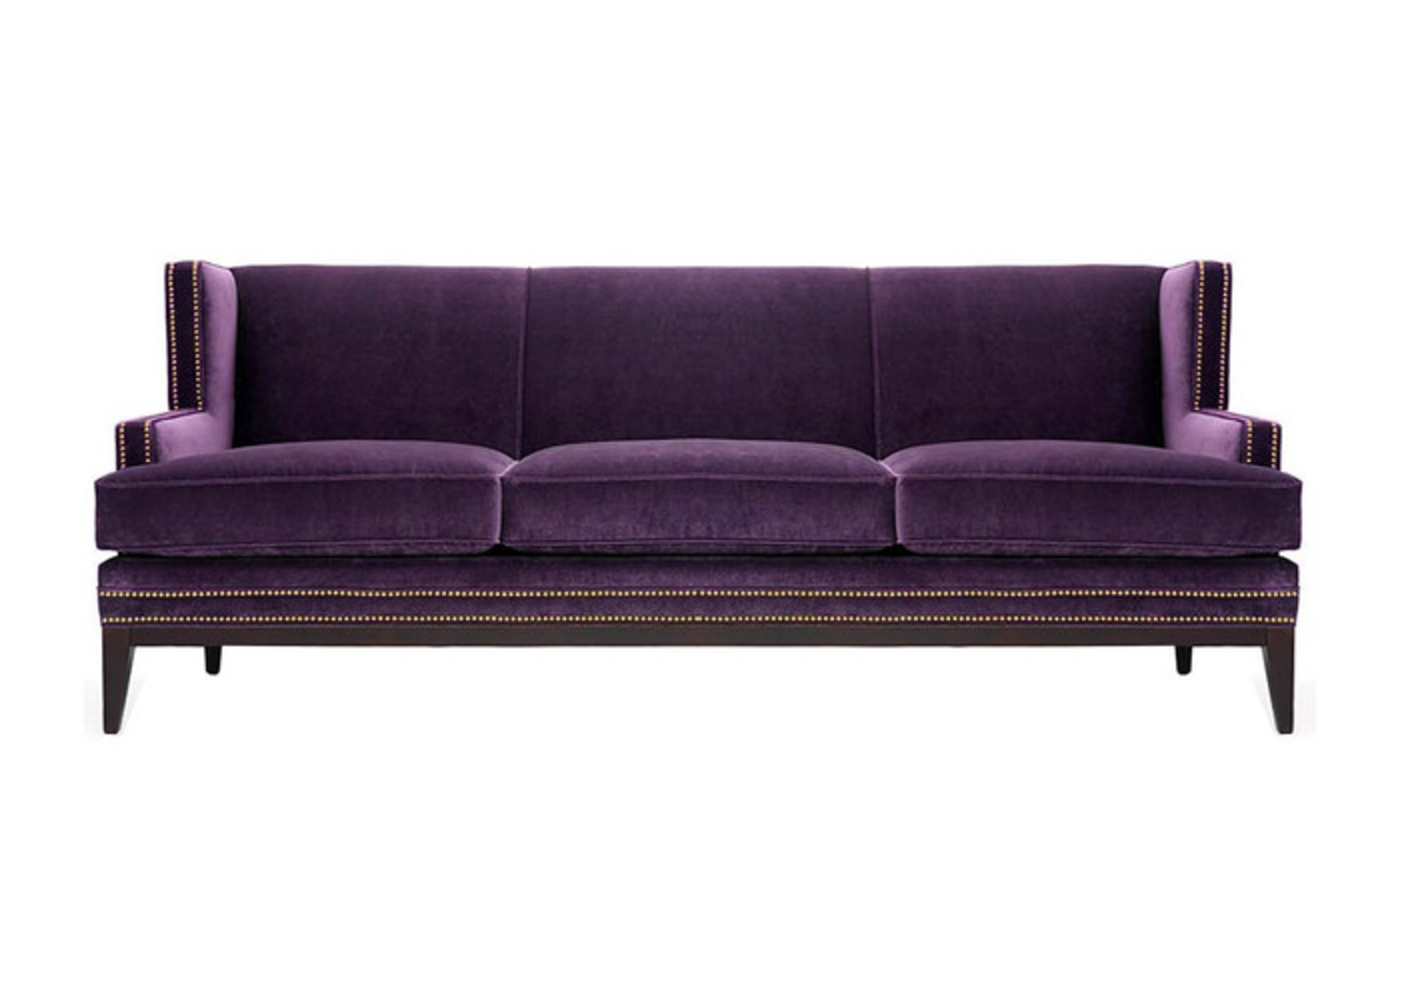 Warm Purple Sofa to Complete Your Living Room Decor: Eggplant Couch | Purple Chaise Lounge Sale | Purple Sofa